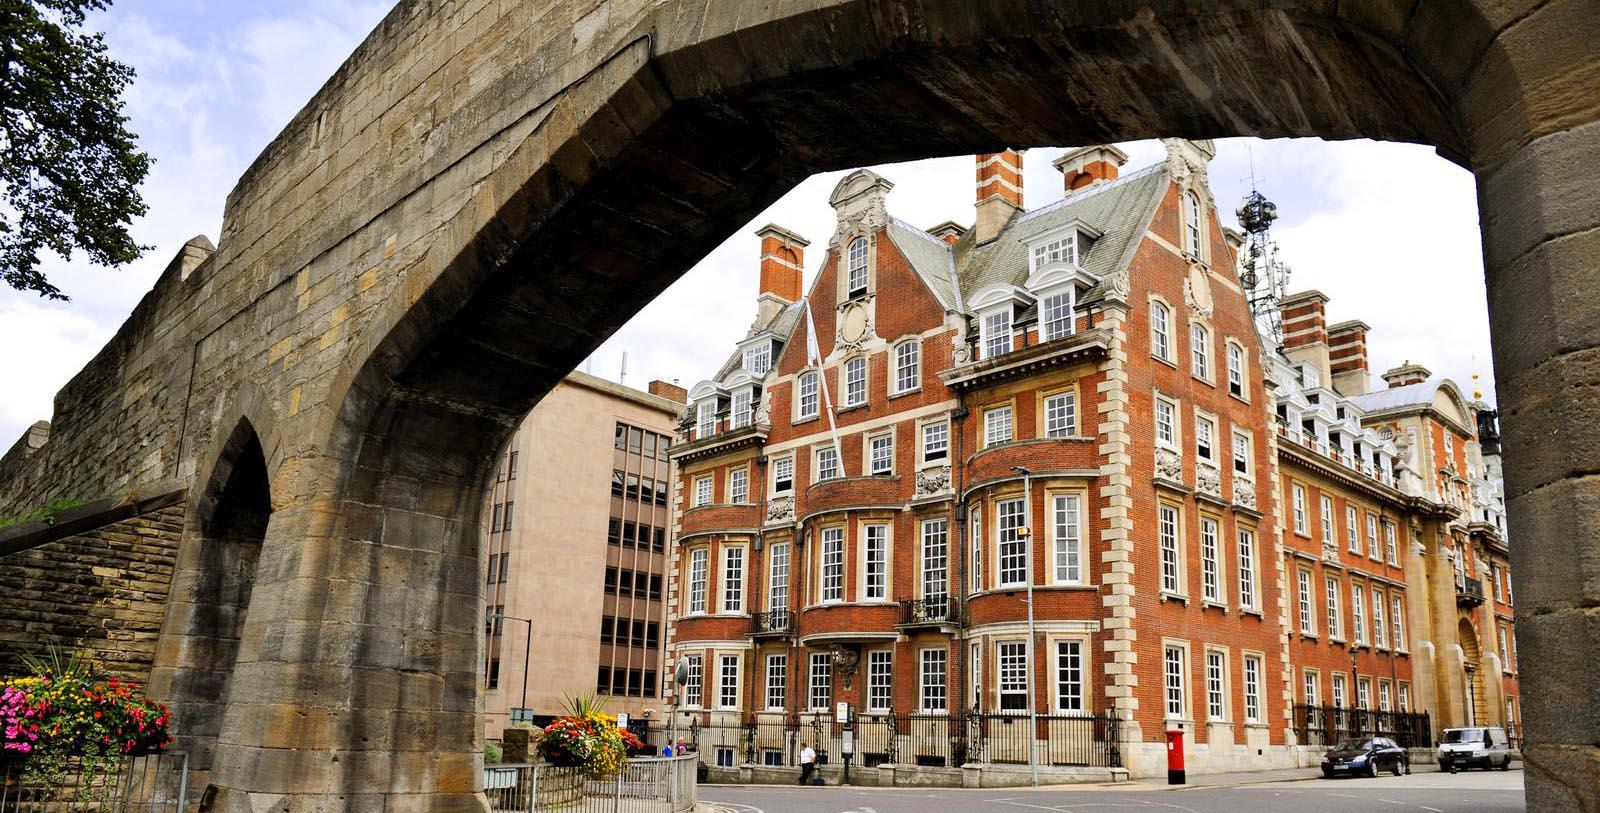 Image of Archway and Hotel Exterior The Grand York, 1906, Member of Historic Hotels Worldwide, in York, England, United Kingdom, Discover